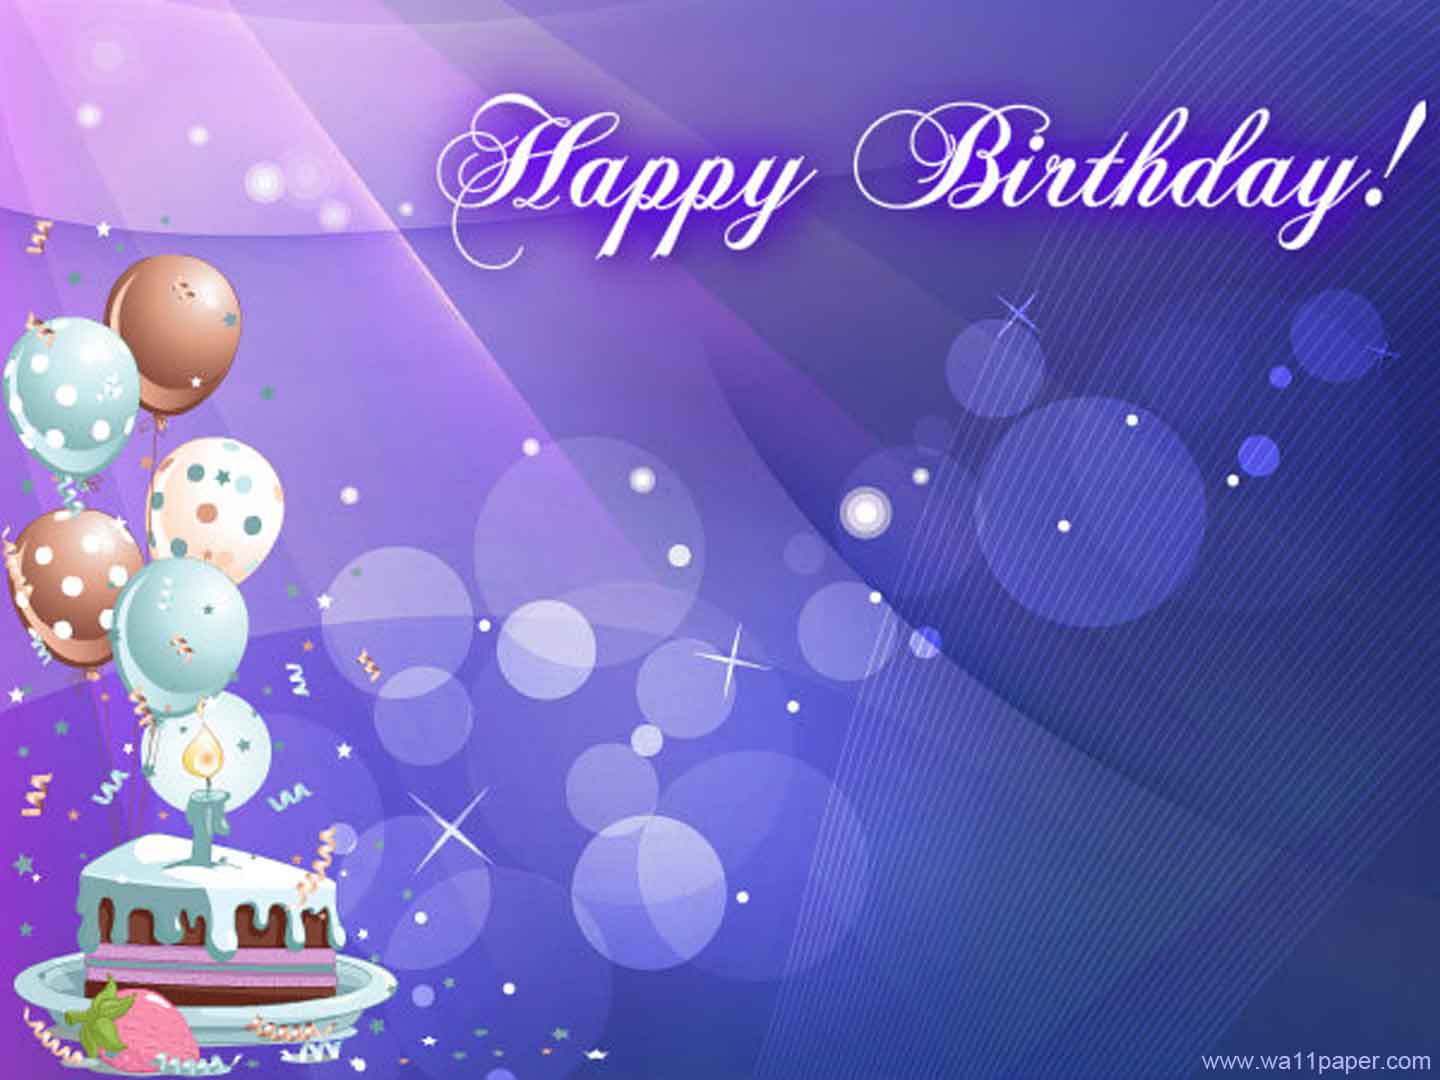 background images for birthday greetings ; 95aad7a9d2c196a47534d6d55015a970